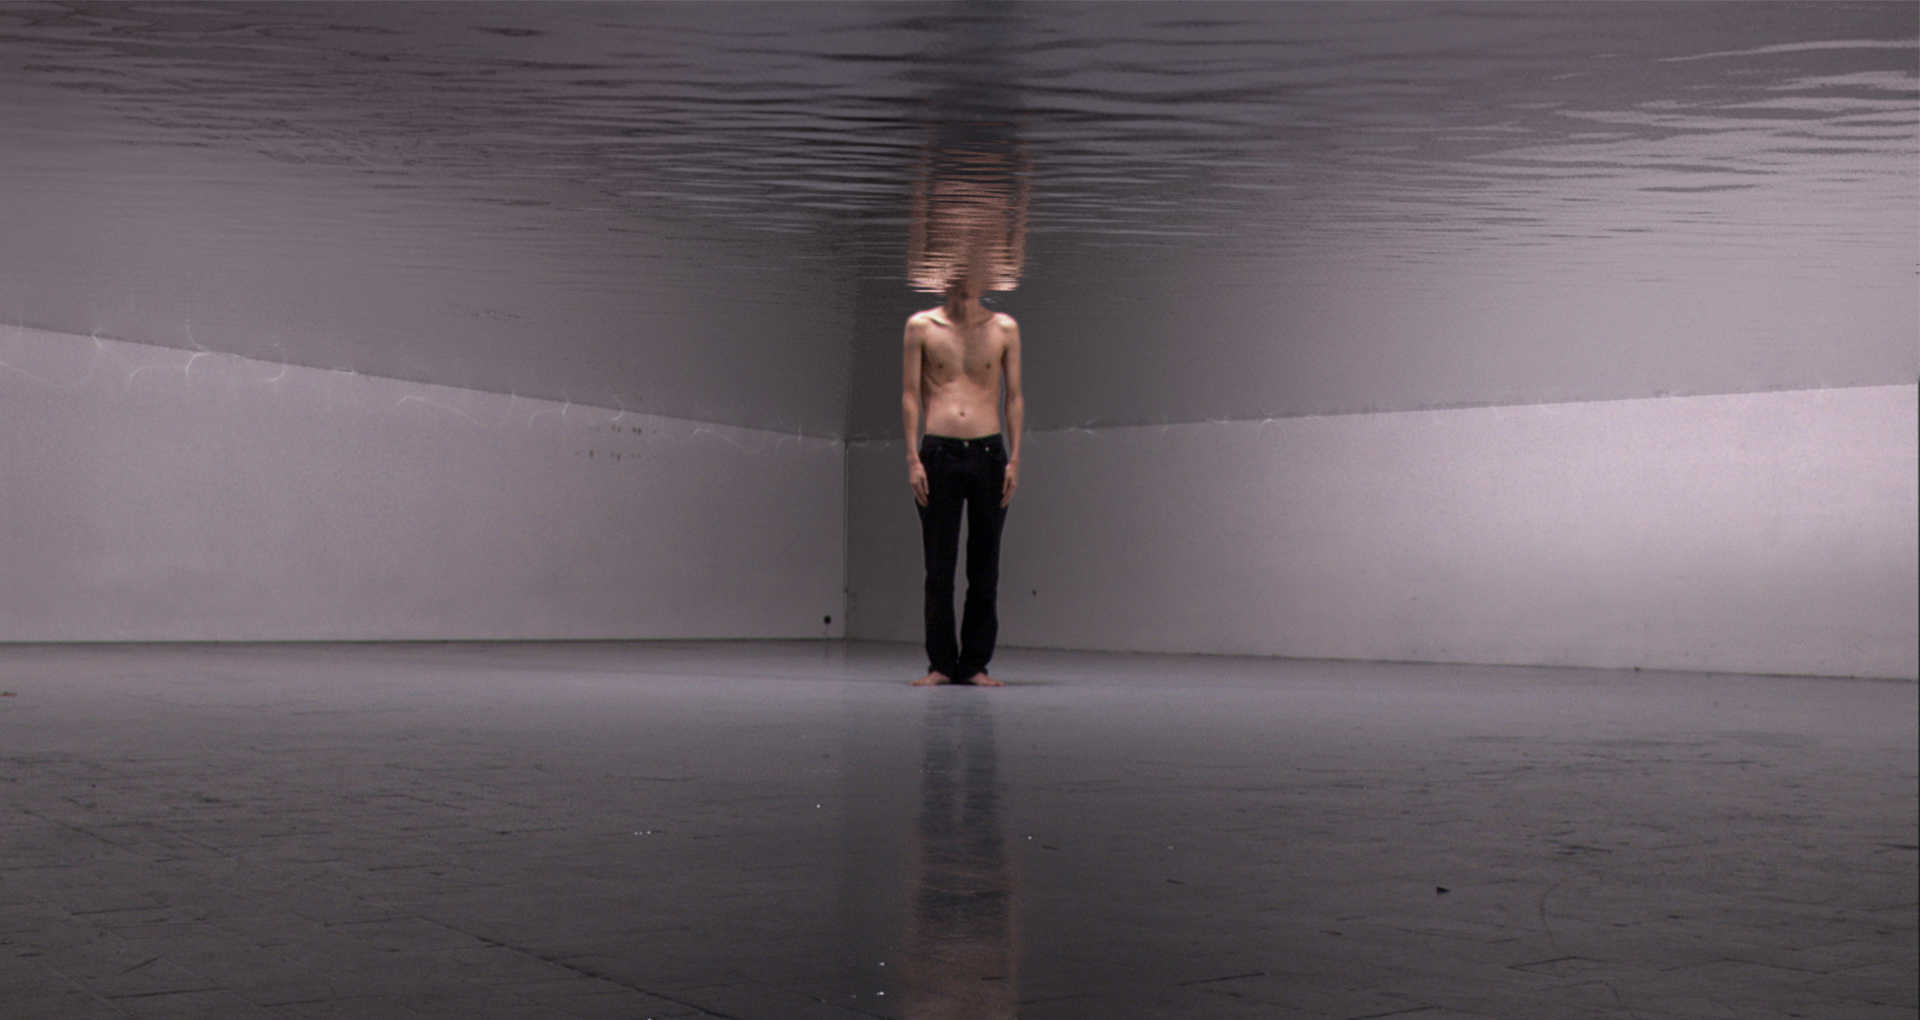 Video montage. A man standing shirtless with black pants in the middle of a room. The upper half of the room is immersed in the water and the character's head too.